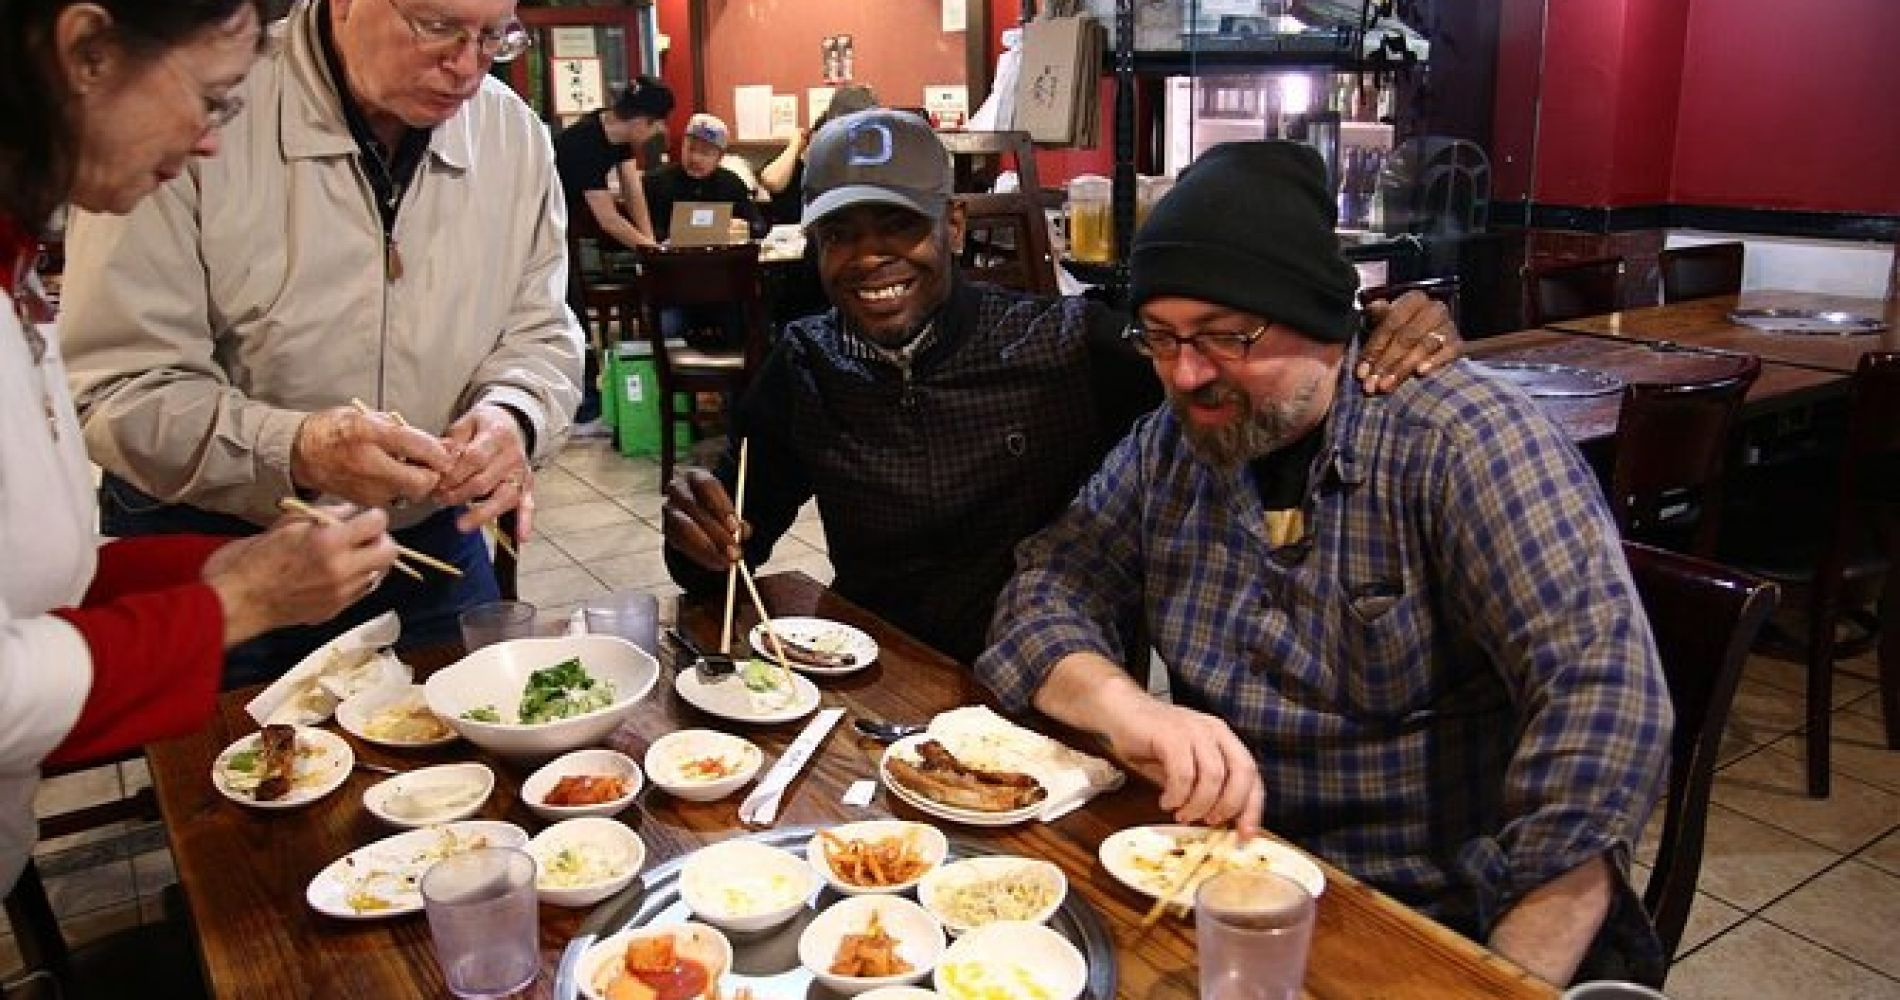 Los Angeles: Ethnic Food, Drink and Culture Tour (Small Group)